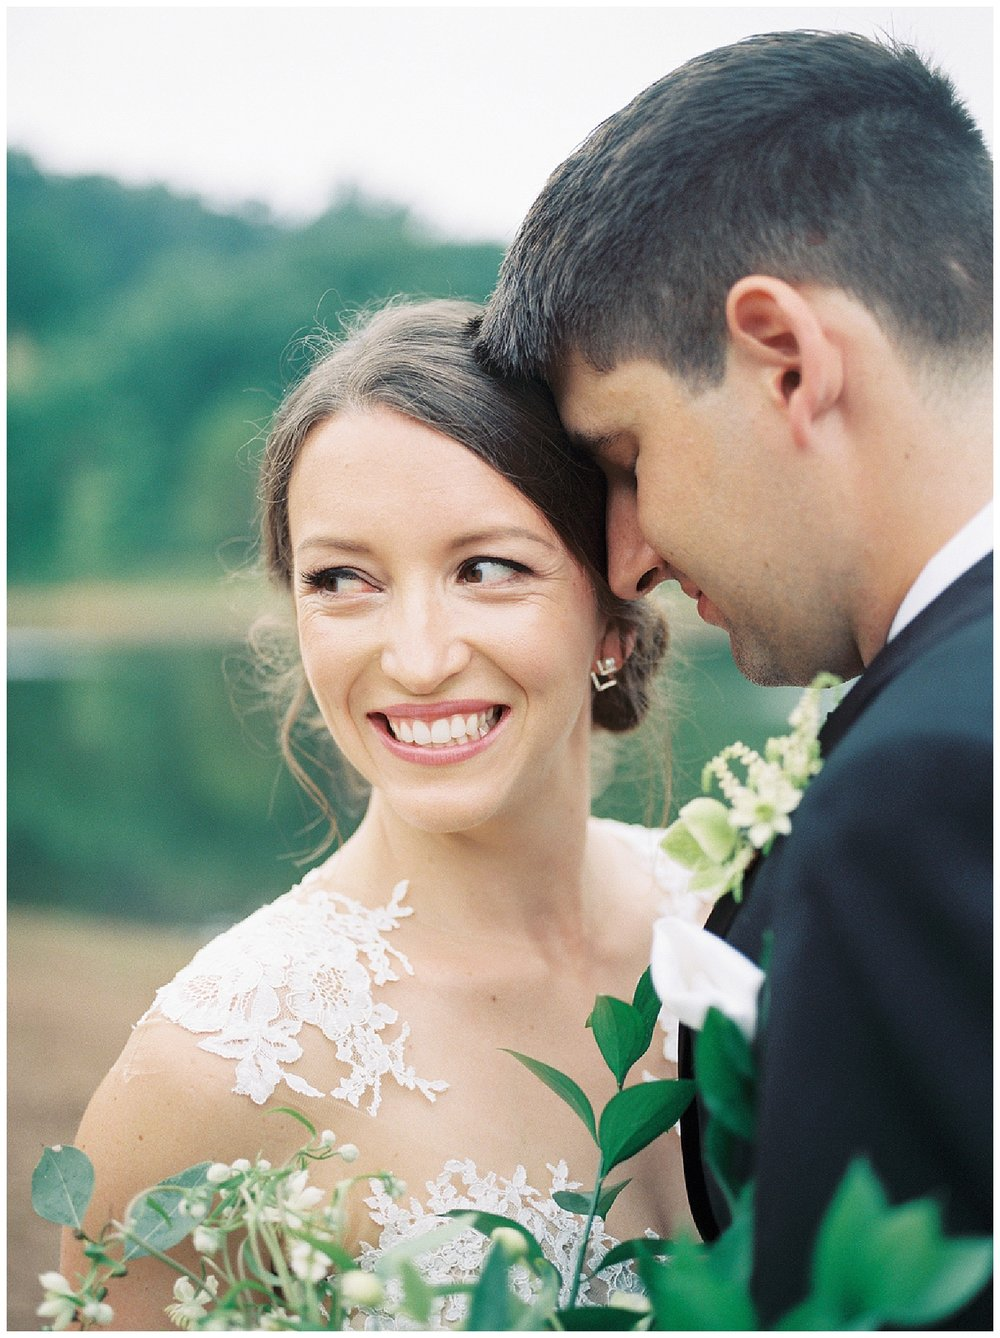 Elegant Farm Wedding | Hopeland Farm Lititz, PA | Pennsylvania Weddings | www.redoakweddings.com